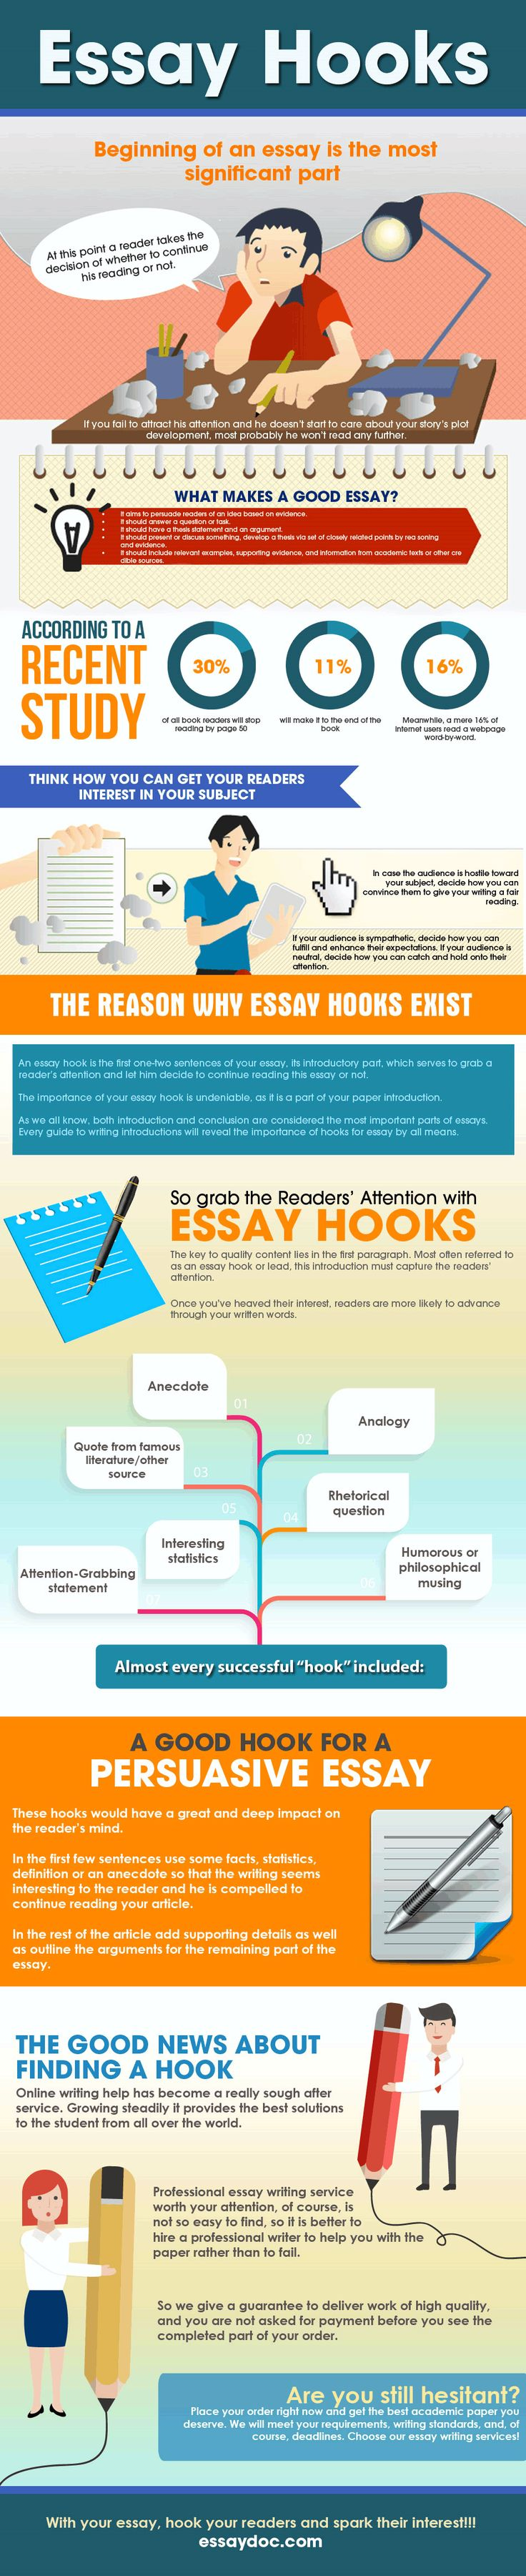 Essay Hooks #infographic #Education